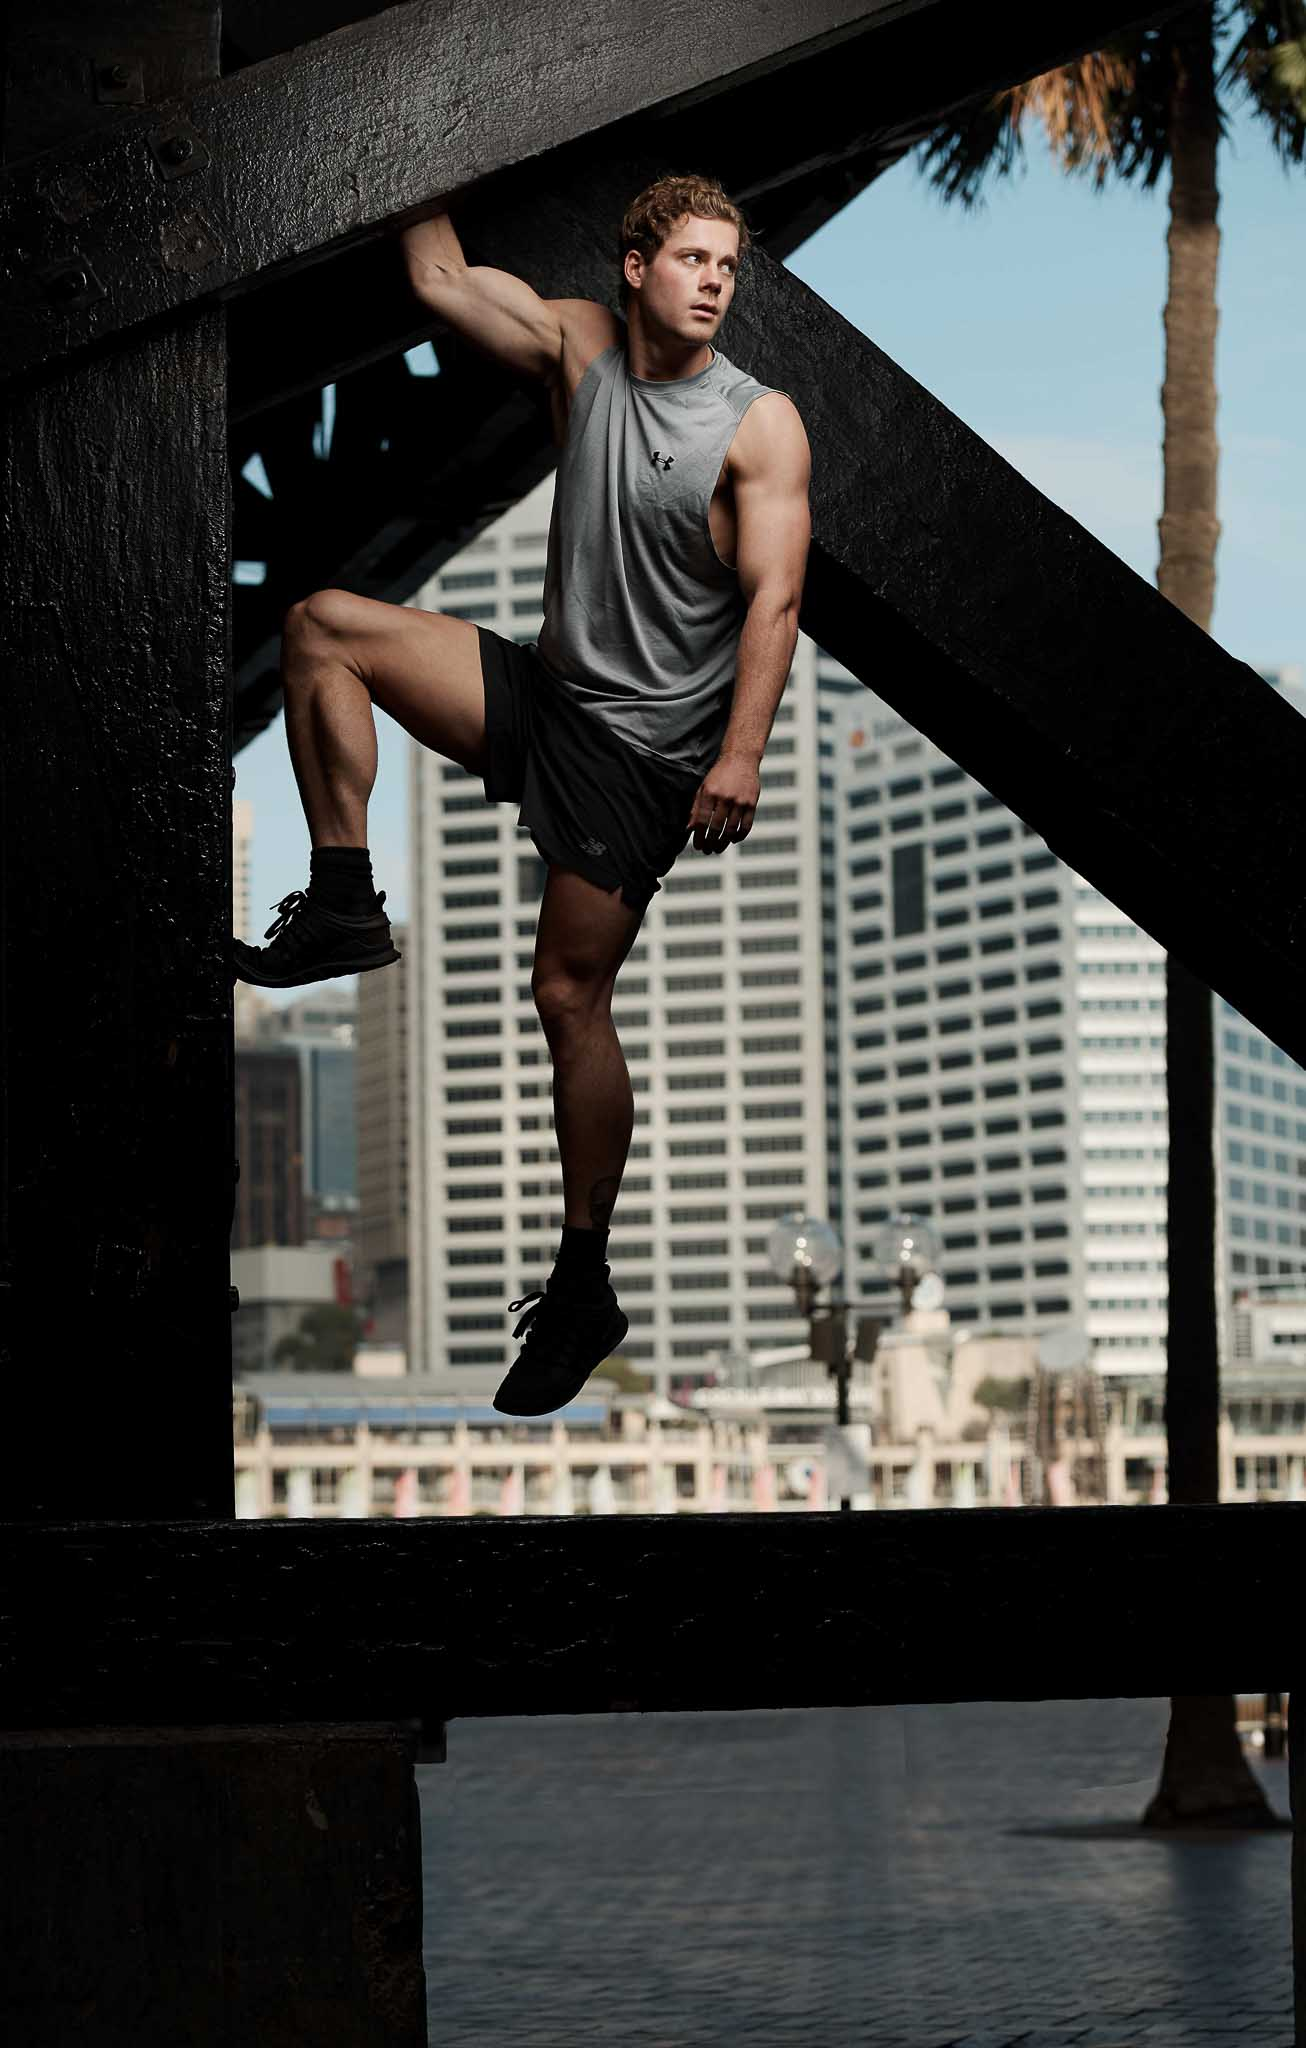 James shooting during his fitness portfolio at Sydney Harbour Bridge